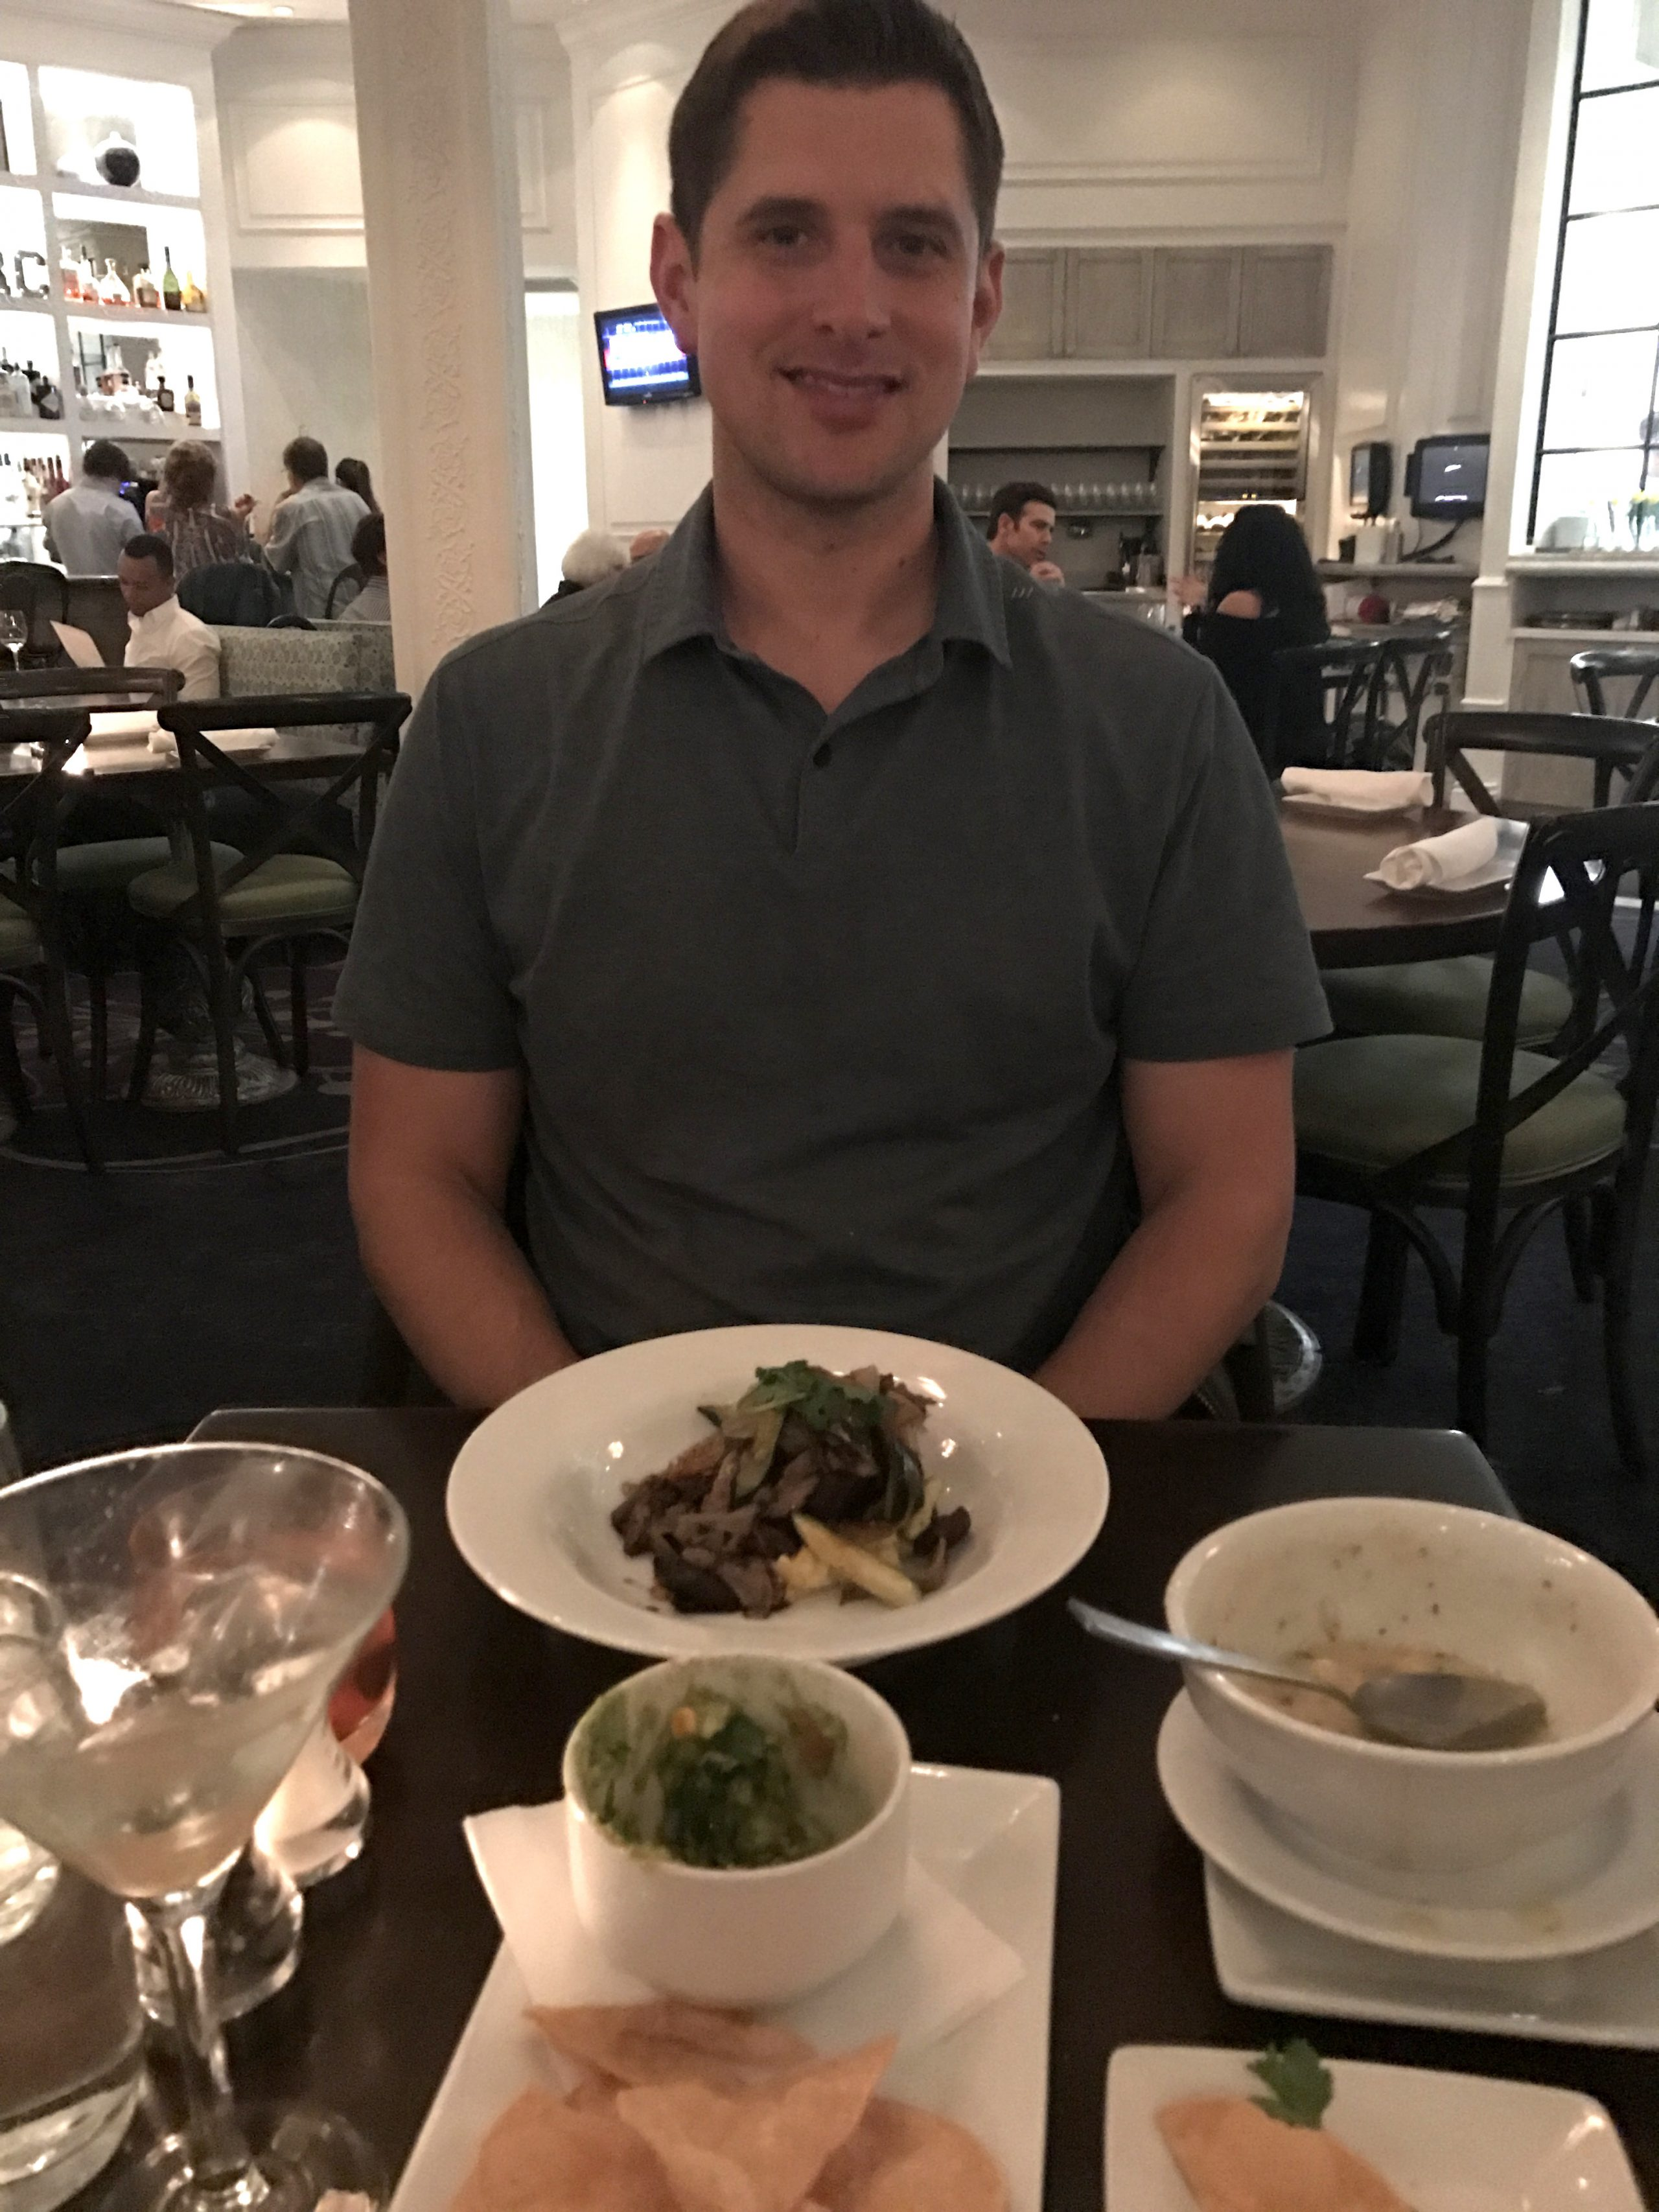 Tom and his meal